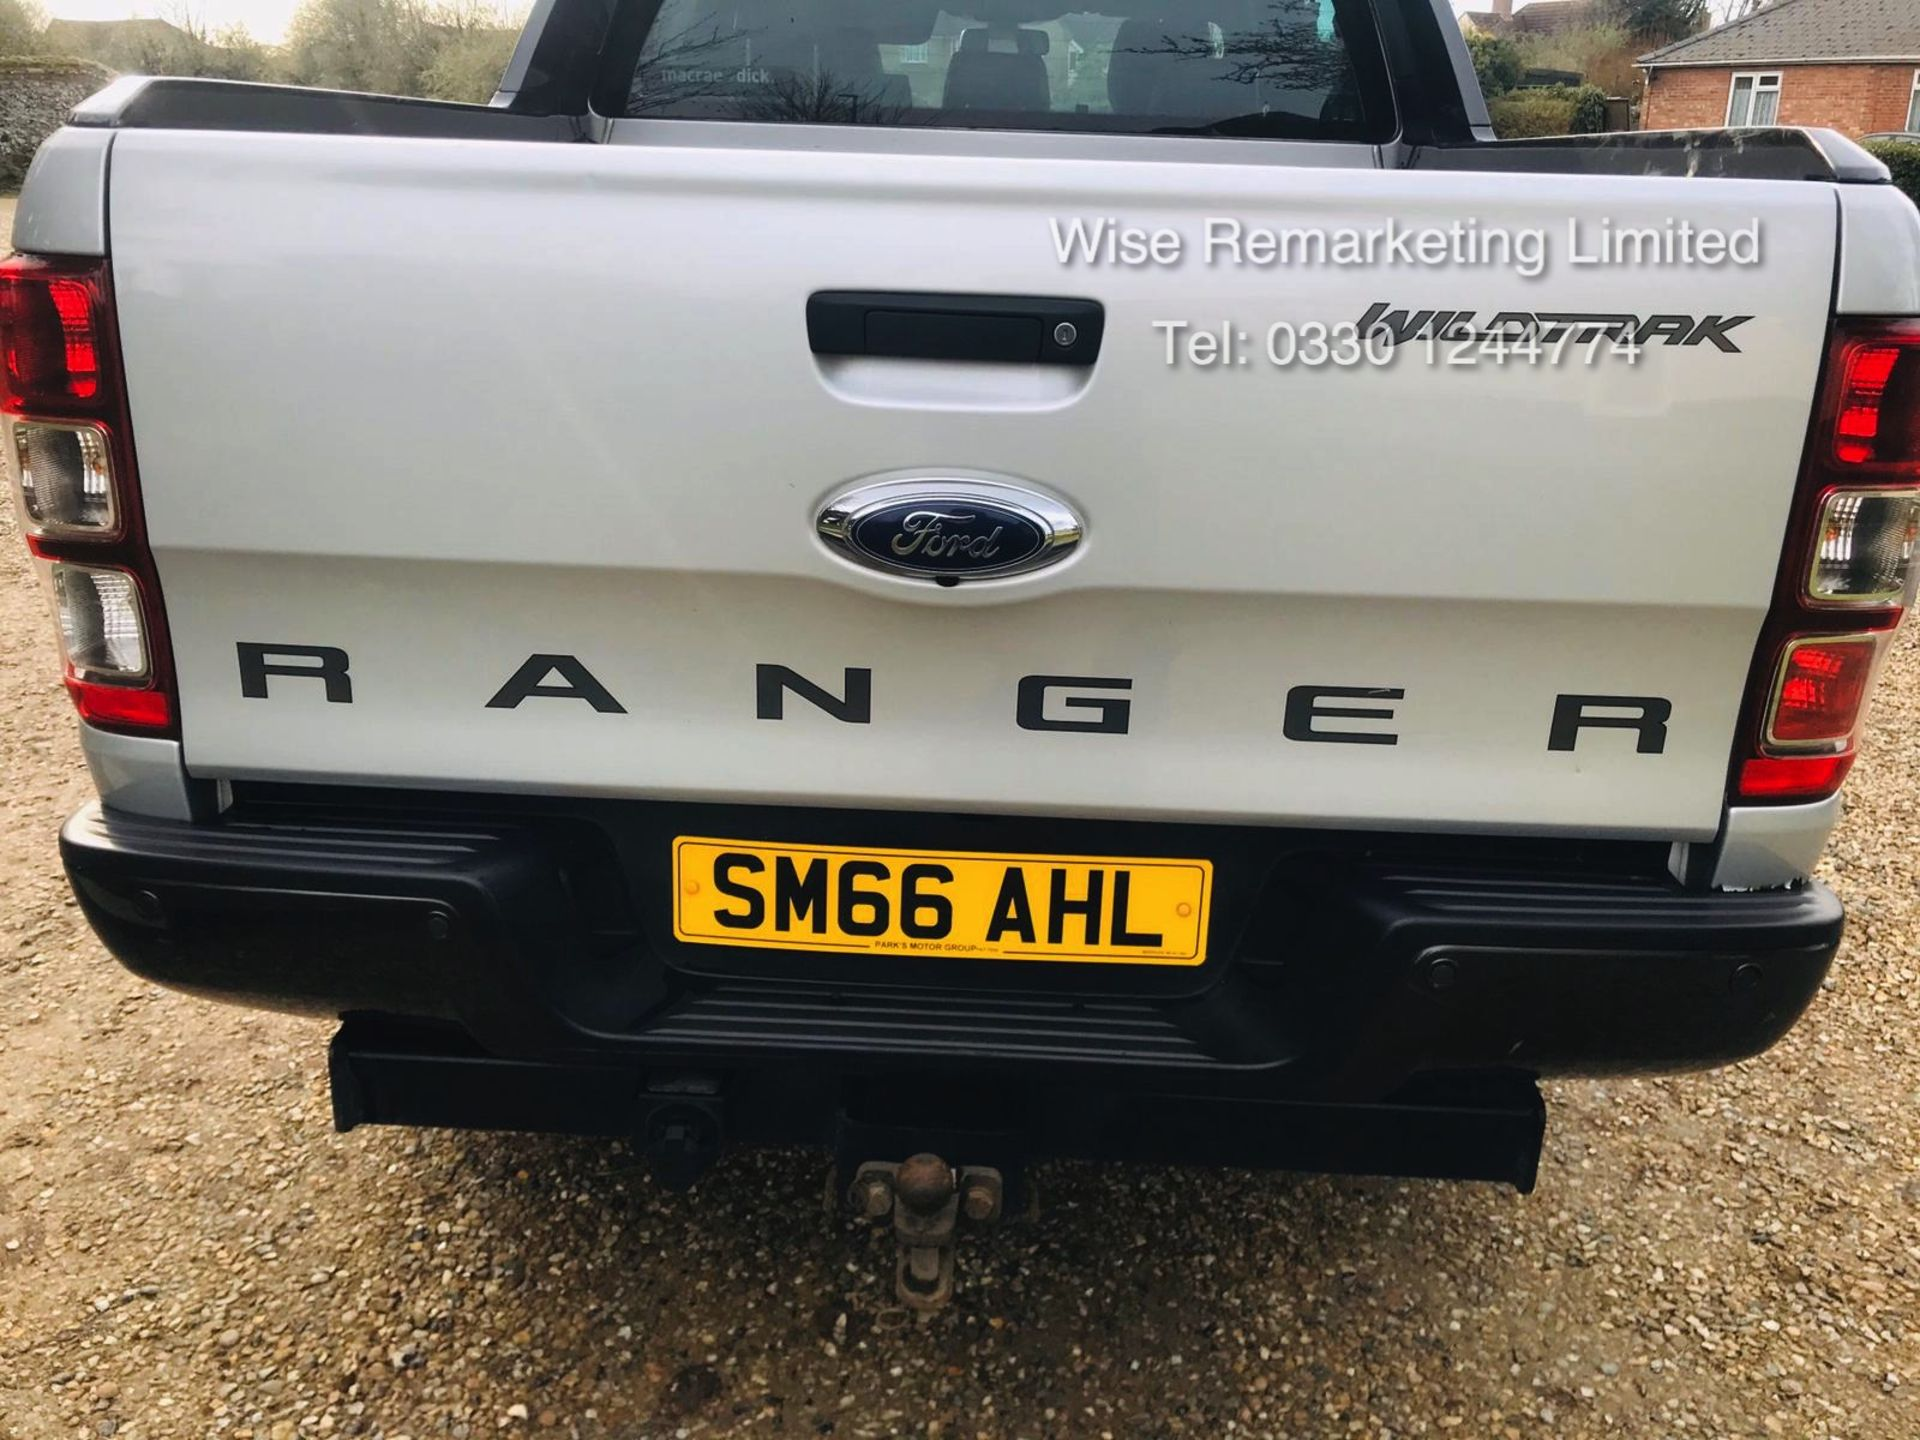 Ford Ranger 3.2 TDCI WILDTRAK - Auto - 2017 Model - 1 Former Keeper - 4x4 - TOP OF THE RANGE - Image 5 of 16